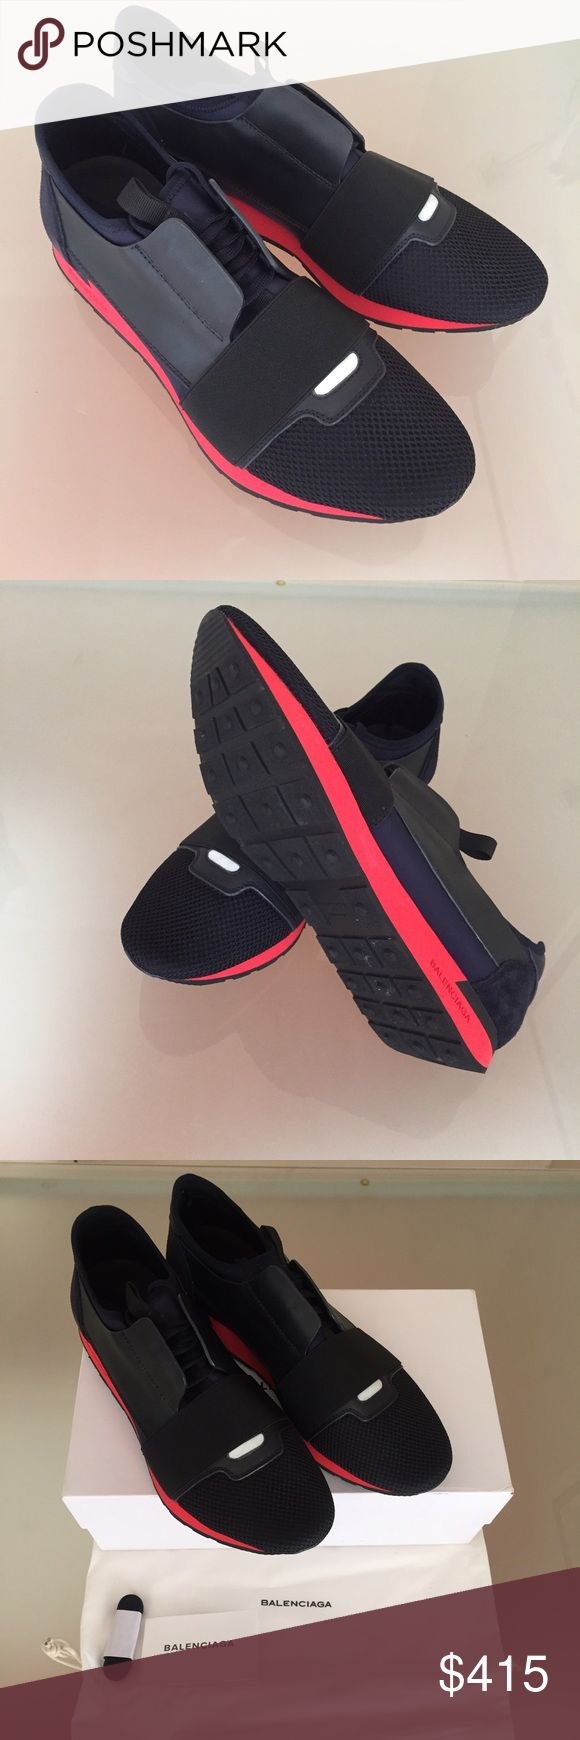 NWOT Balenciaga Sneakers Race Runner Shoes Red 44 NWOT Balenciaga Sneakers Race Runner Shoes Red 44 100% Authentic Guaranteed. Never Worn. Comes with Original Boxing and dustbag, minor wear on box  I'll give an extra $25 off If paying by ️️ Balenciaga Shoes Sneakers